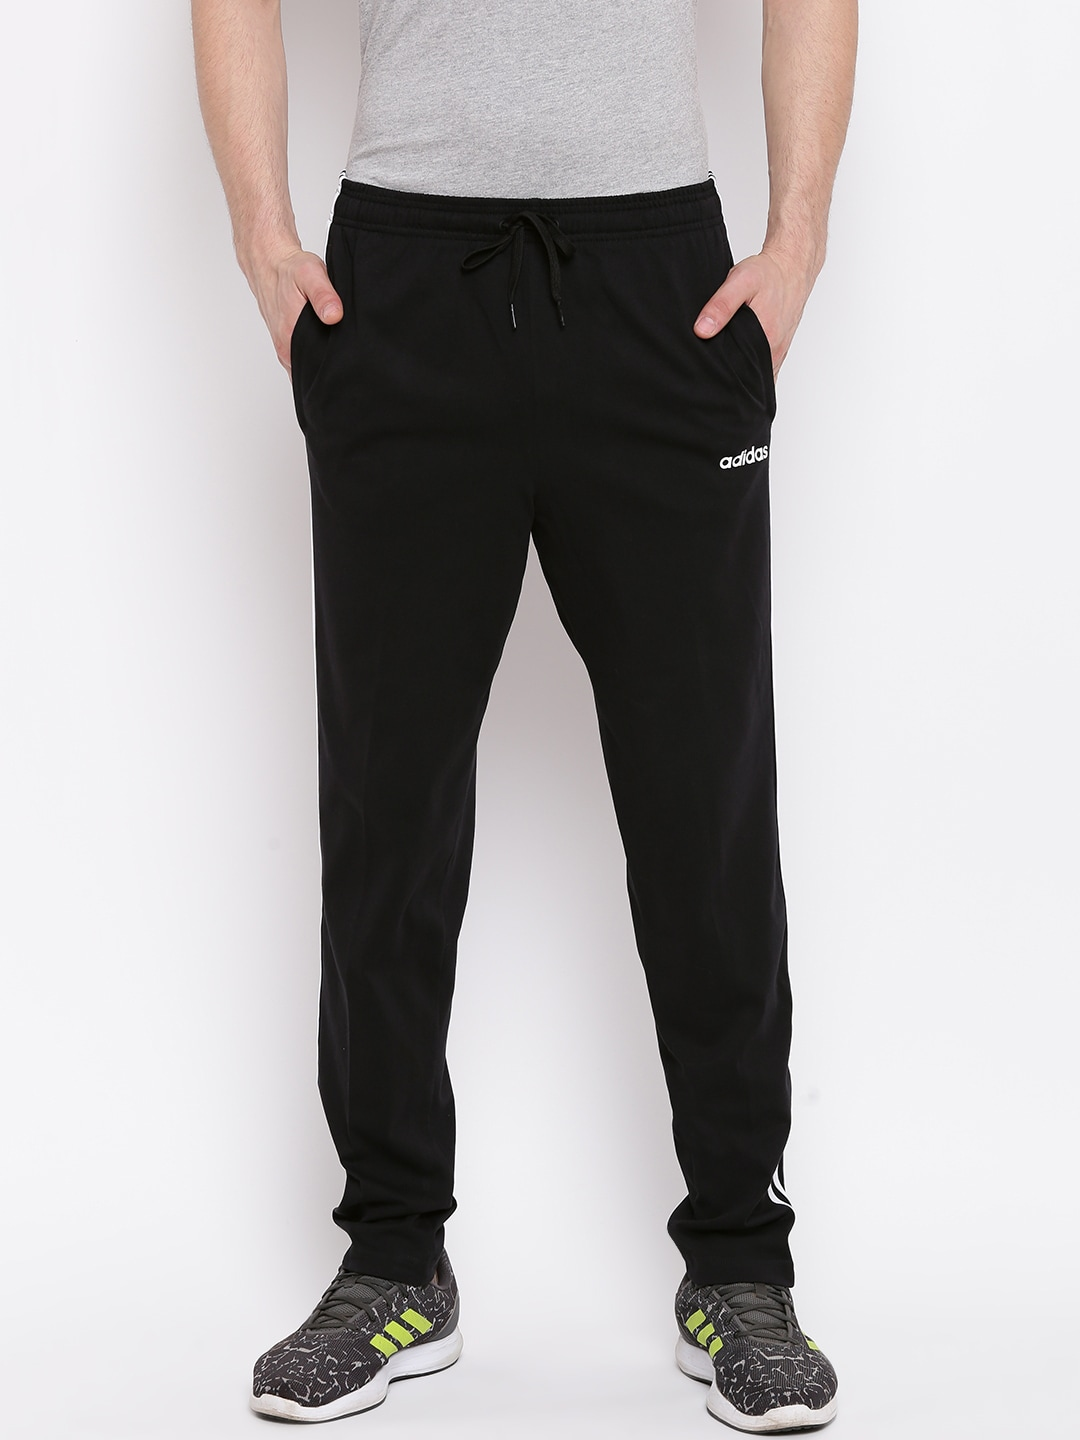 7a1b5609 Adidas Track Pants Pants Jeans - Buy Adidas Track Pants Pants Jeans online  in India